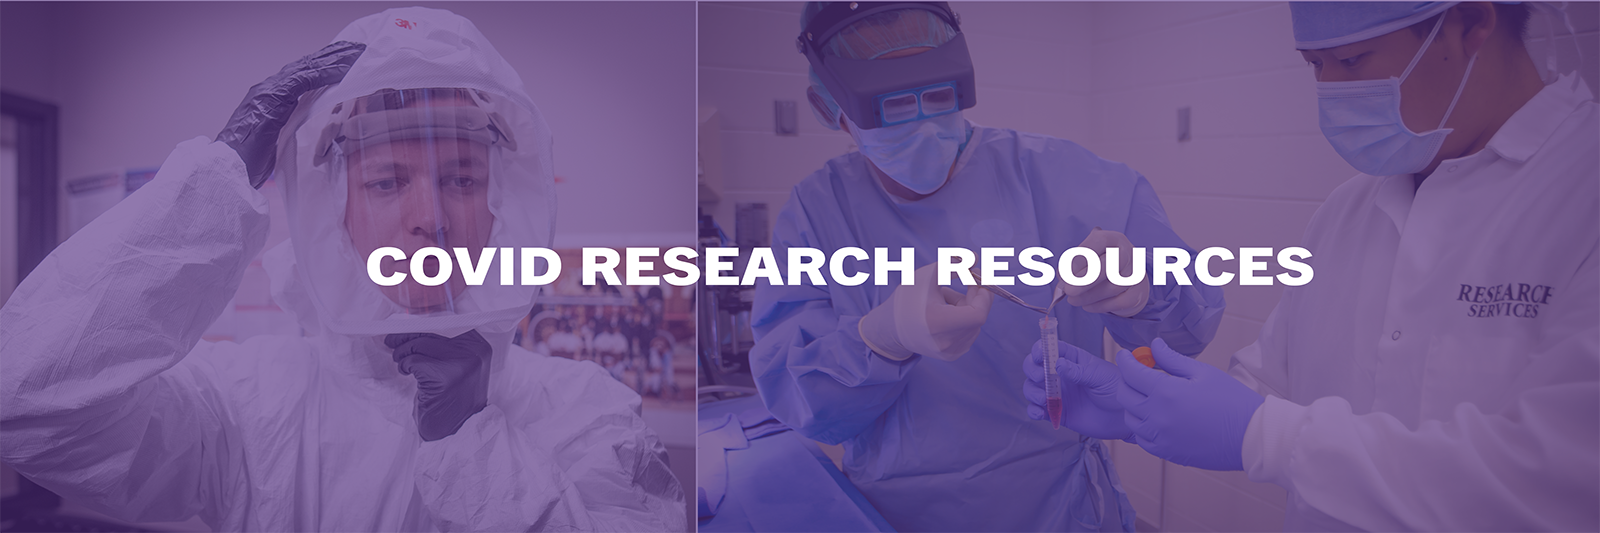 Covid-19 Research Resources